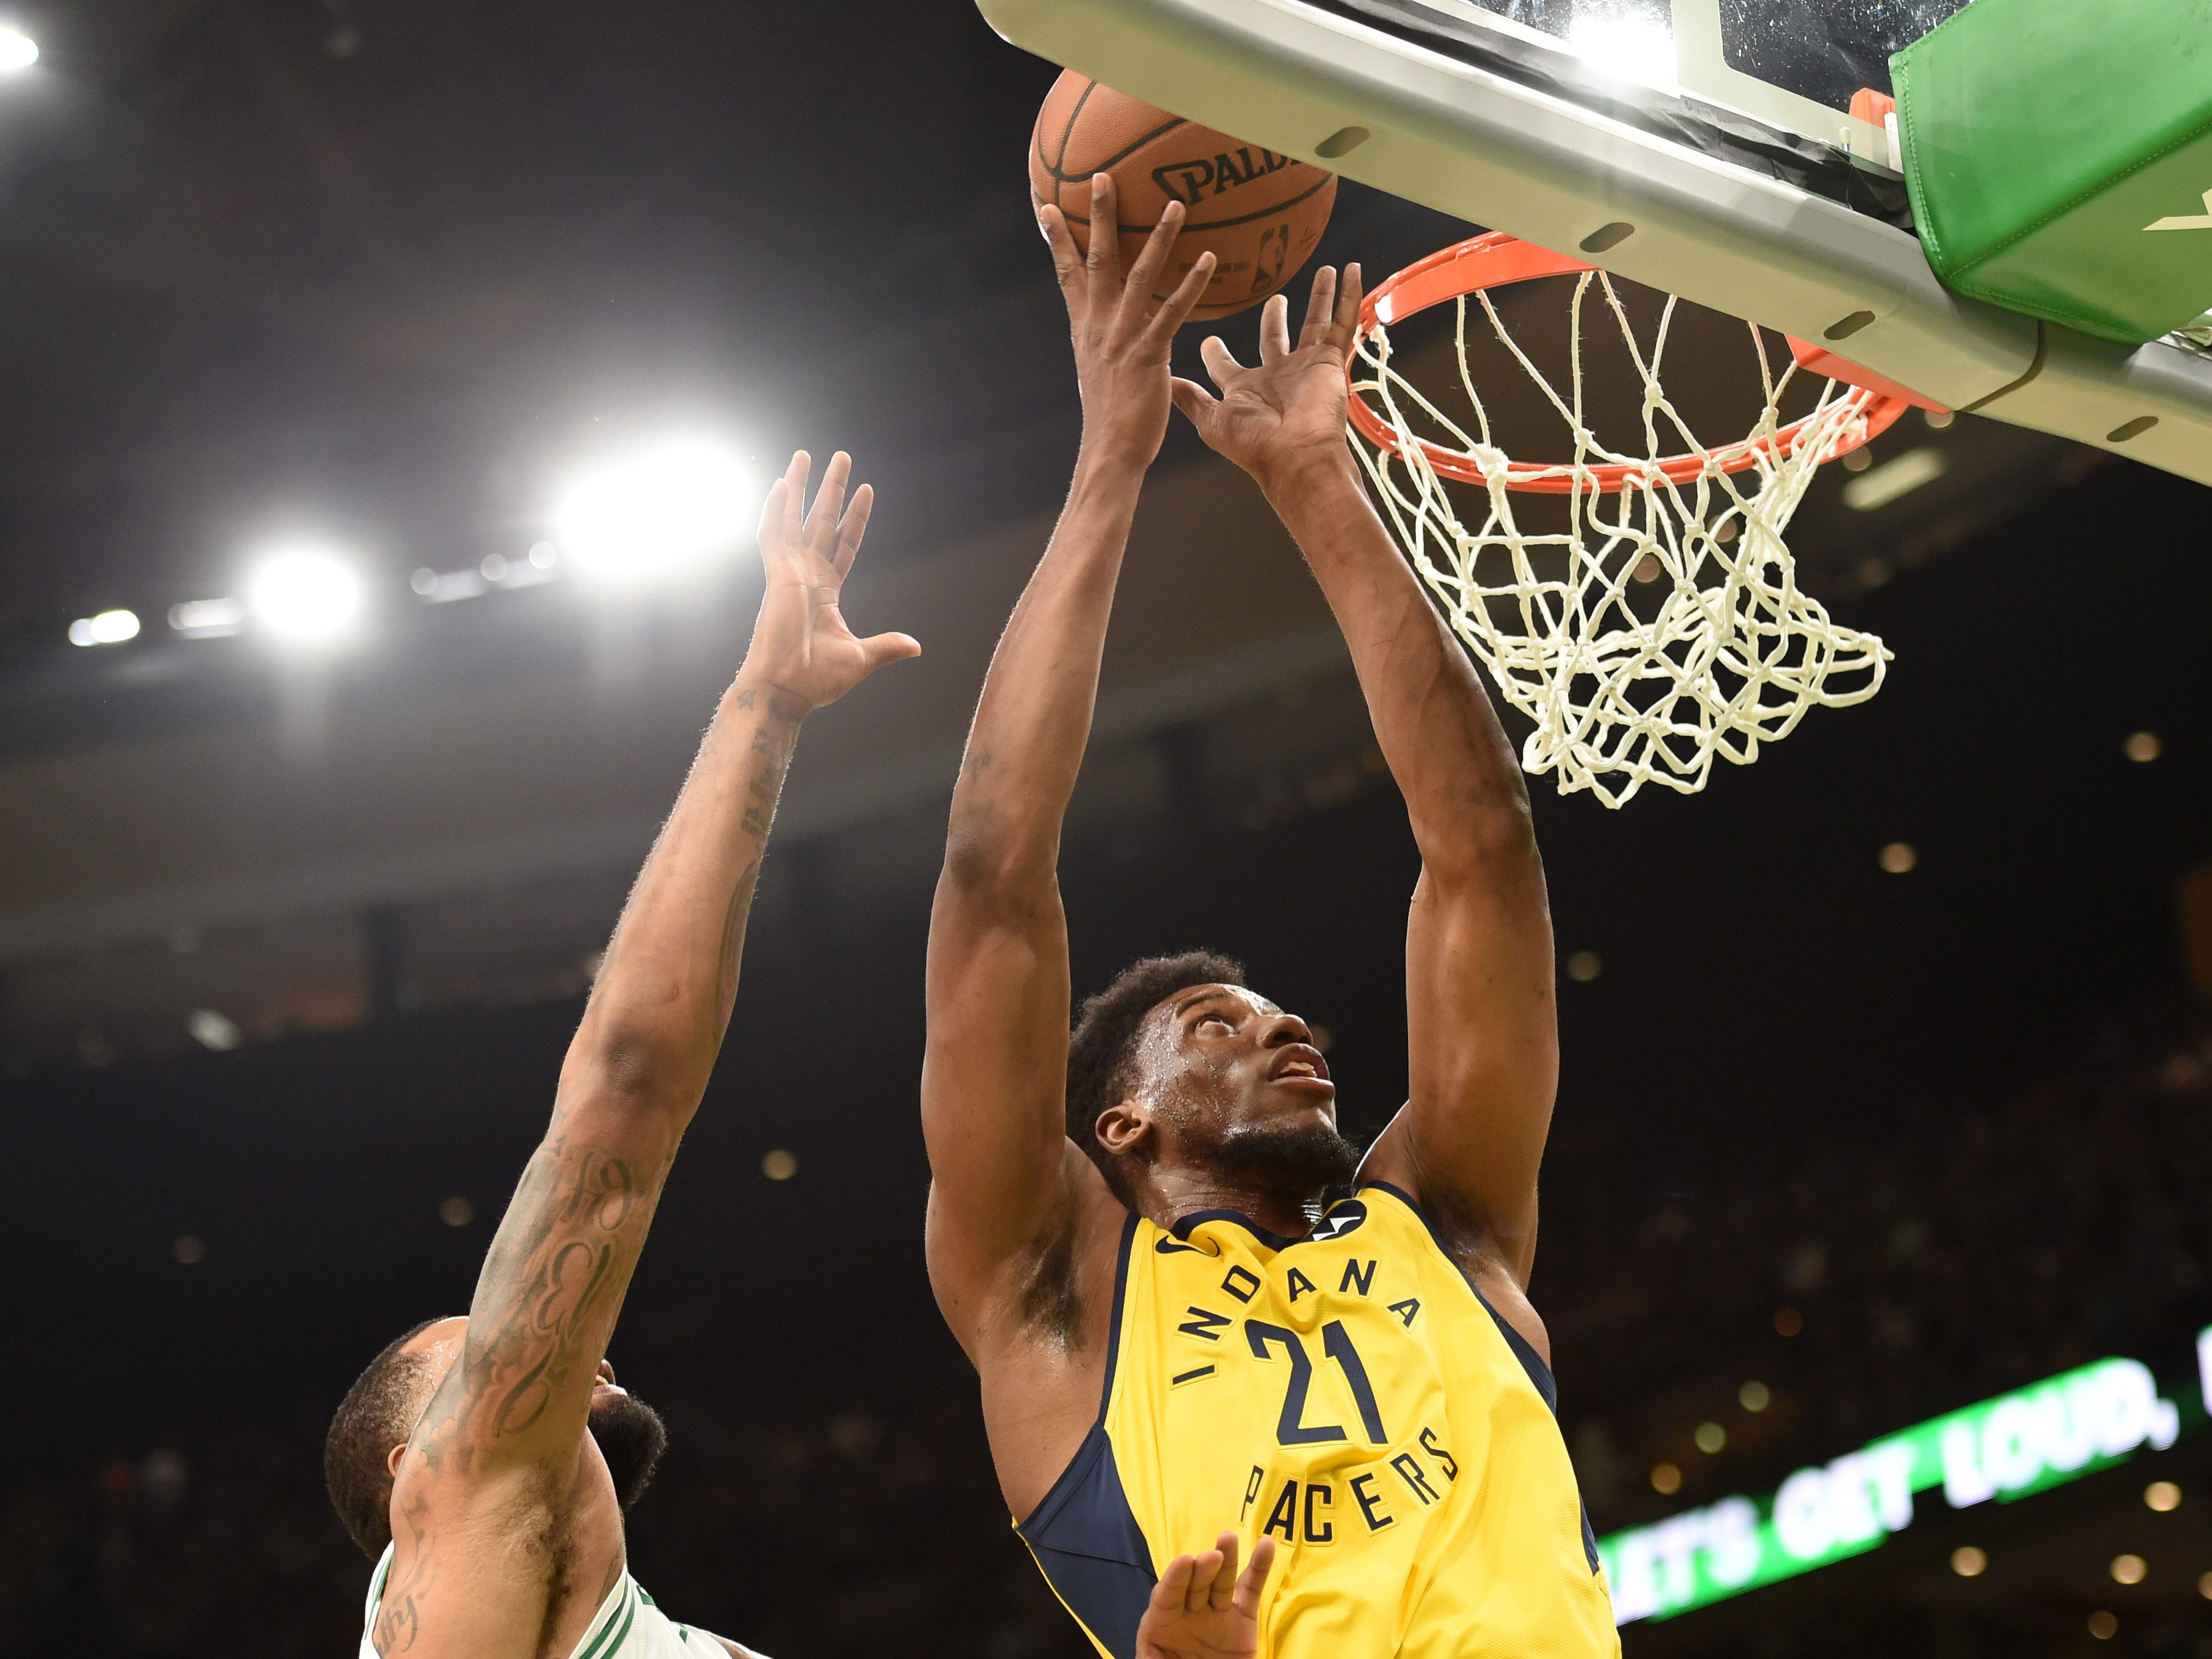 Jan 9, 2019; Boston, MA, USA; Indiana Pacers forward Thaddeus Young (21) lays the ball in the basket against Boston Celtics forward Marcus Morris (13) during the first half at TD Garden.